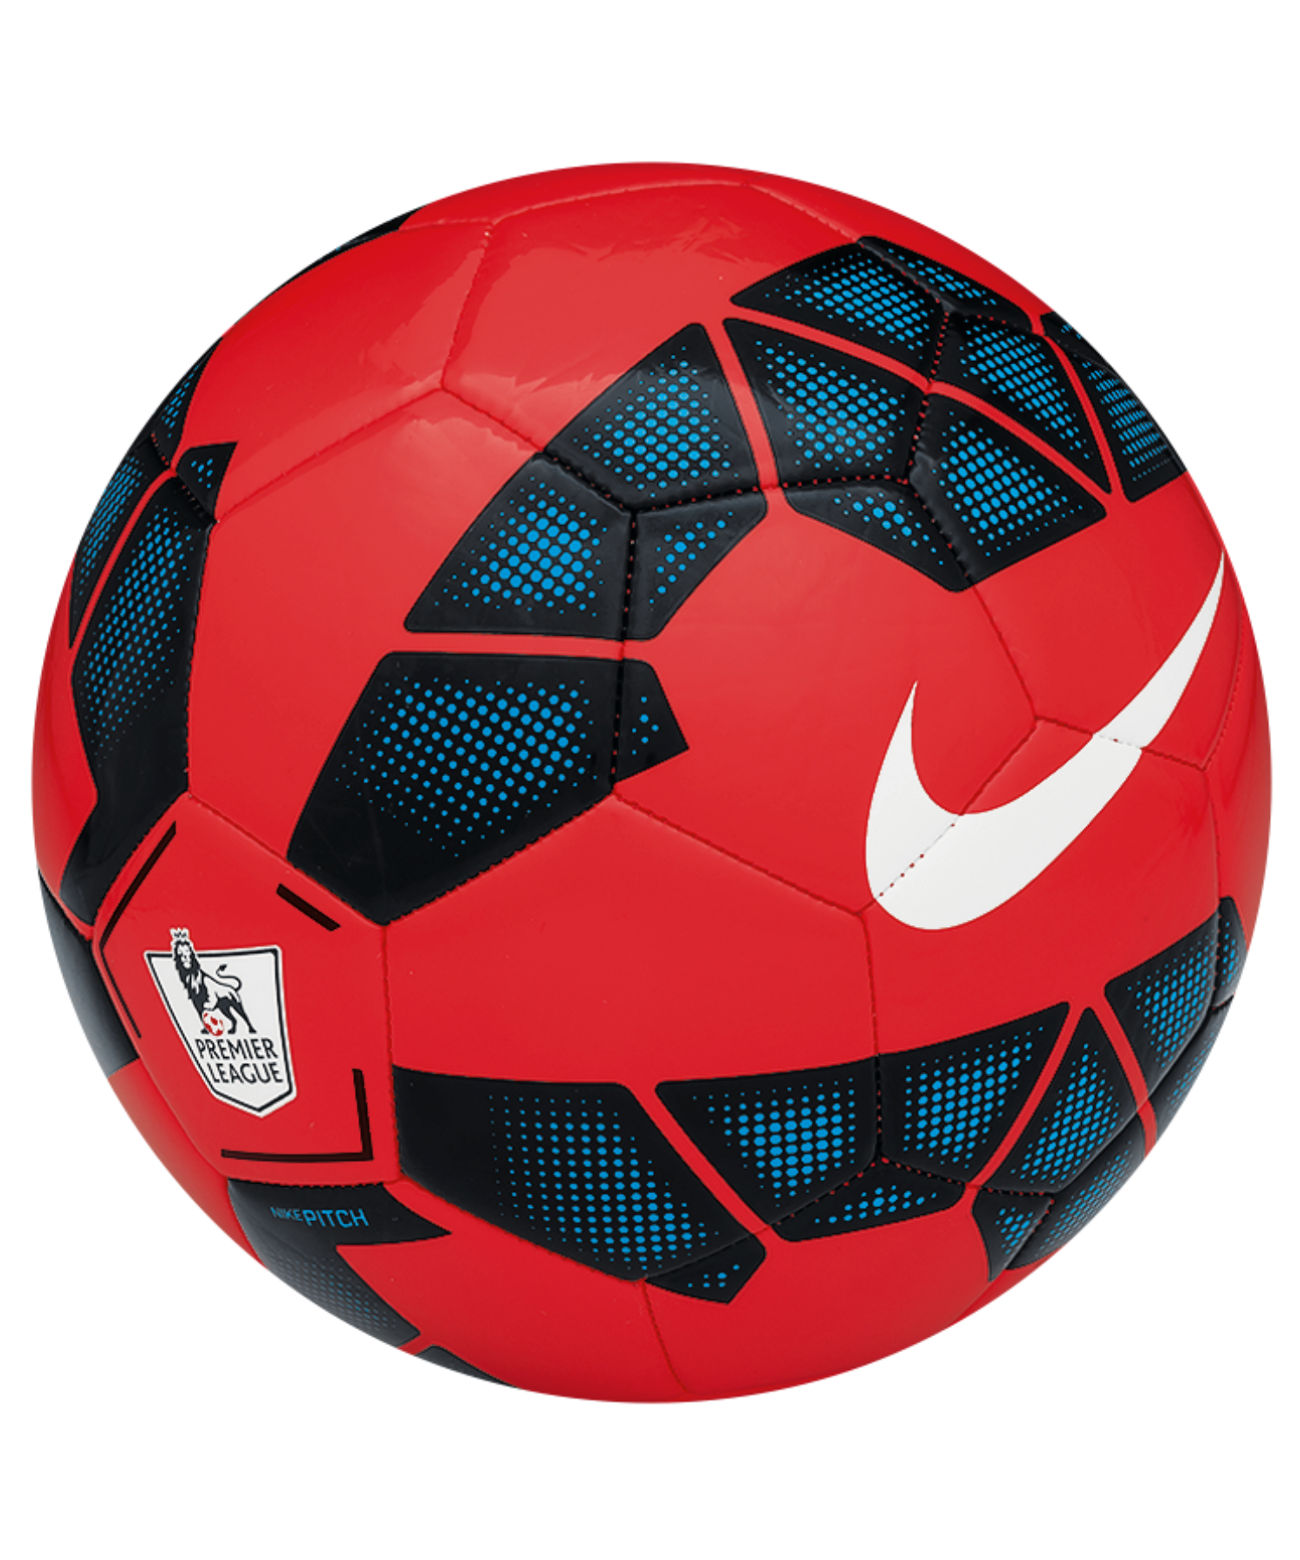 Nike soccer balls on Shoppinder